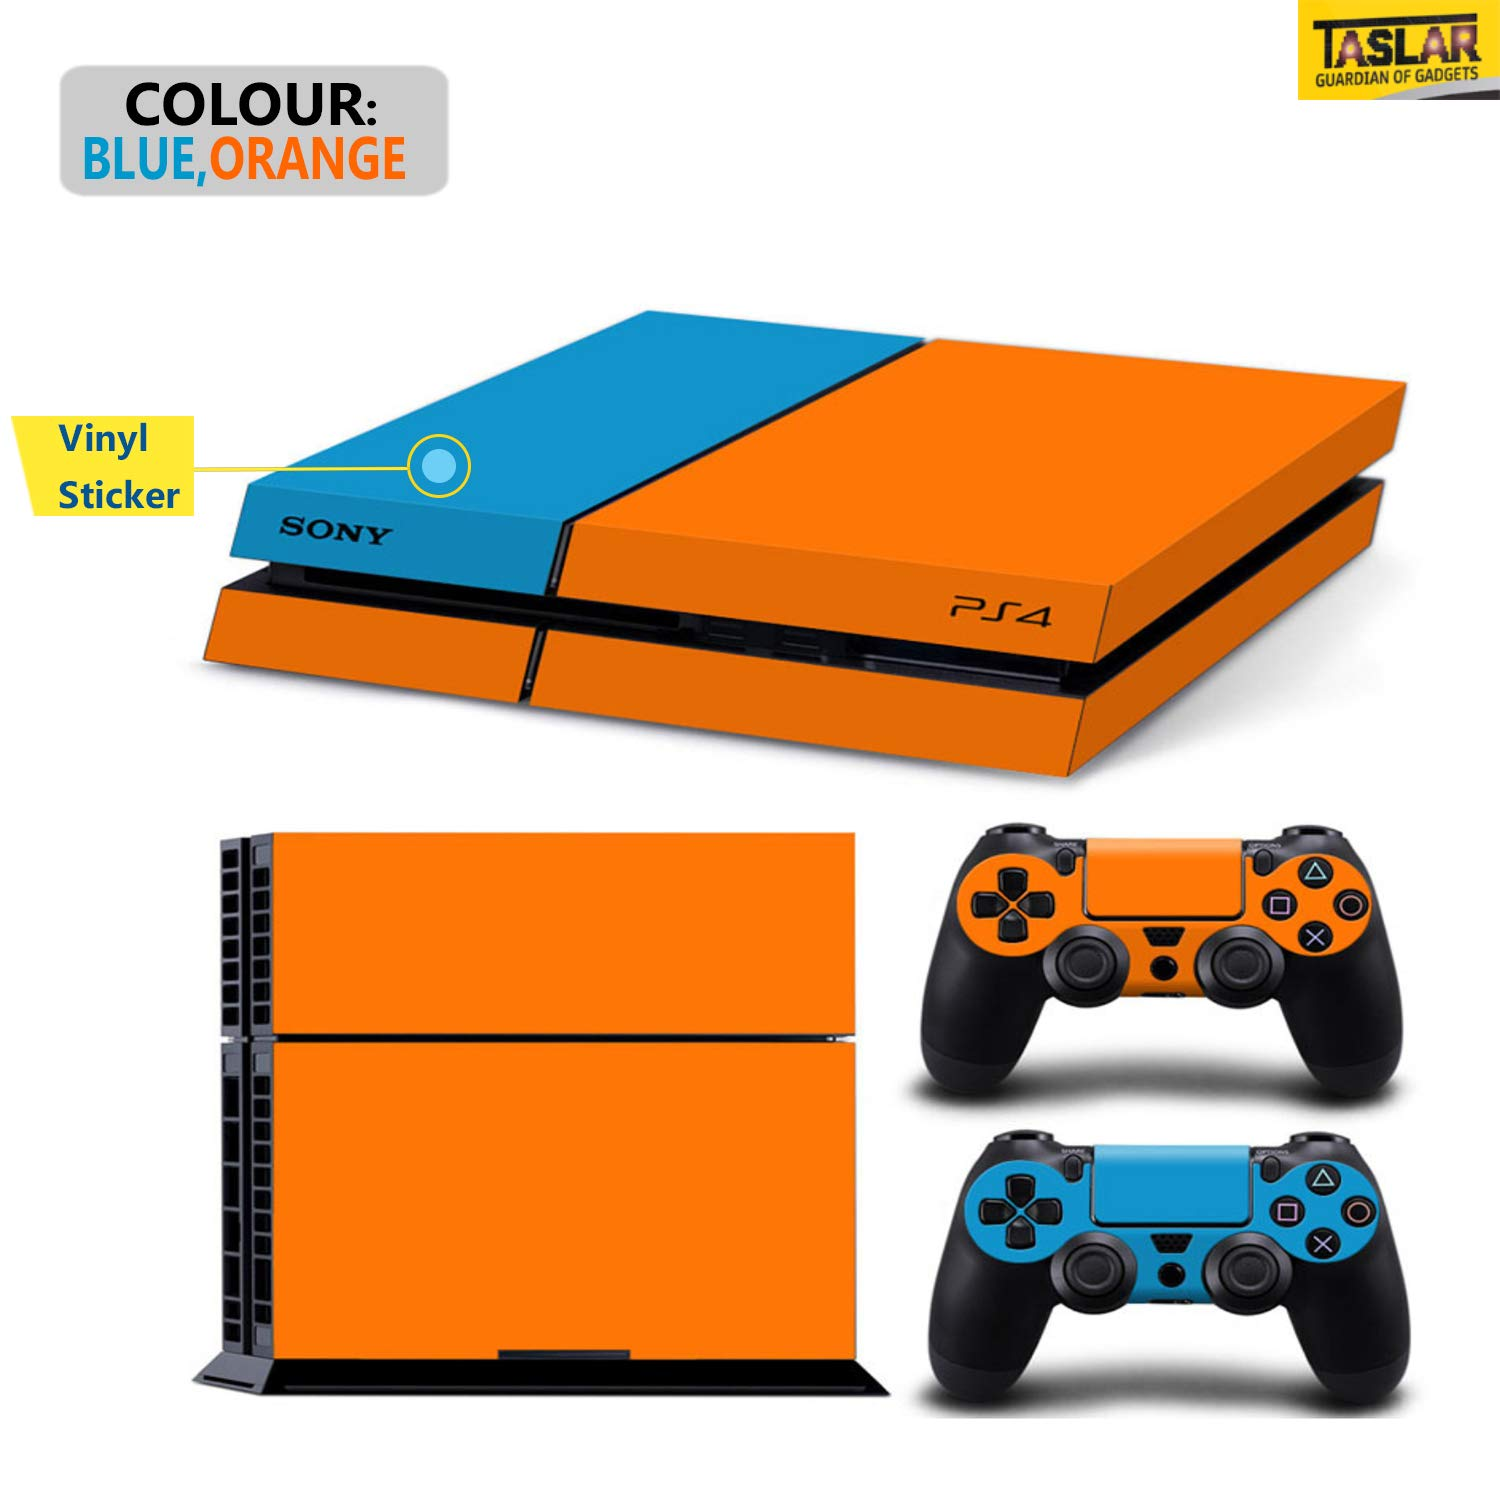 TASLAR Multicolor Vinyl Skin Decal Sticker Pattern Cover Set Compatible with PS4 Playstation 4 Console and Controller (Blue Orange)